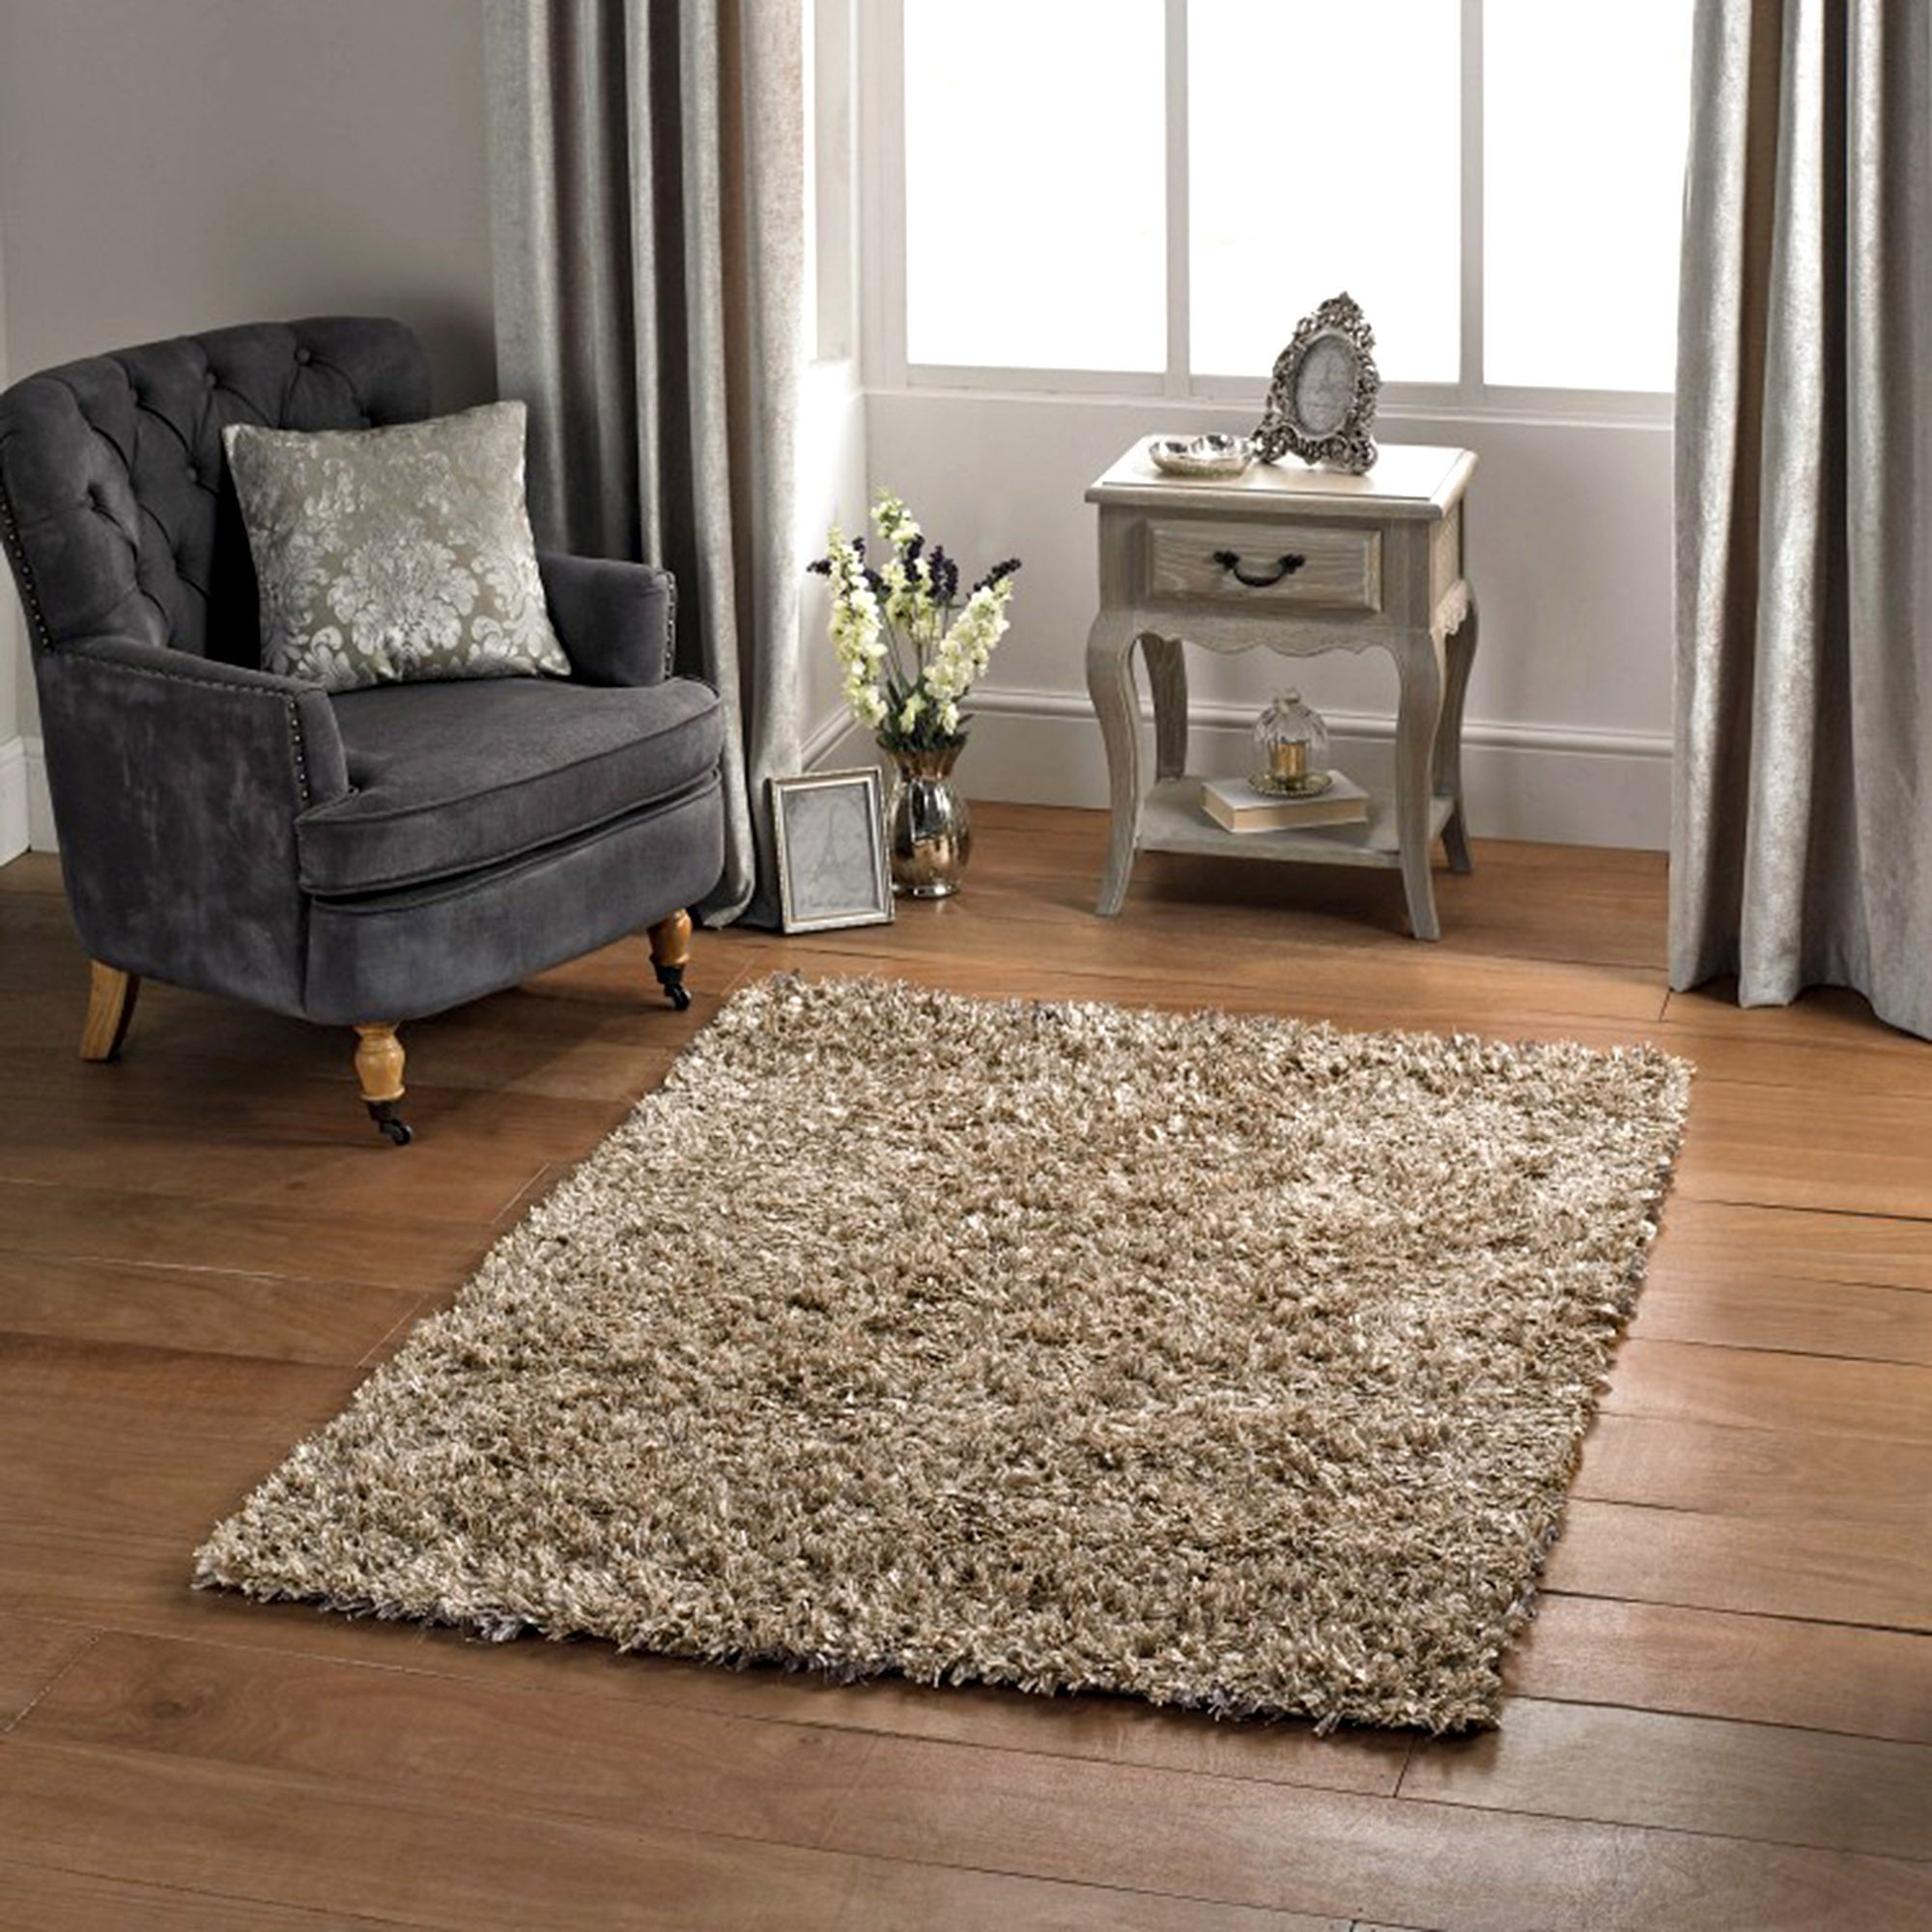 Mixed Ribbons Rug Dunelm